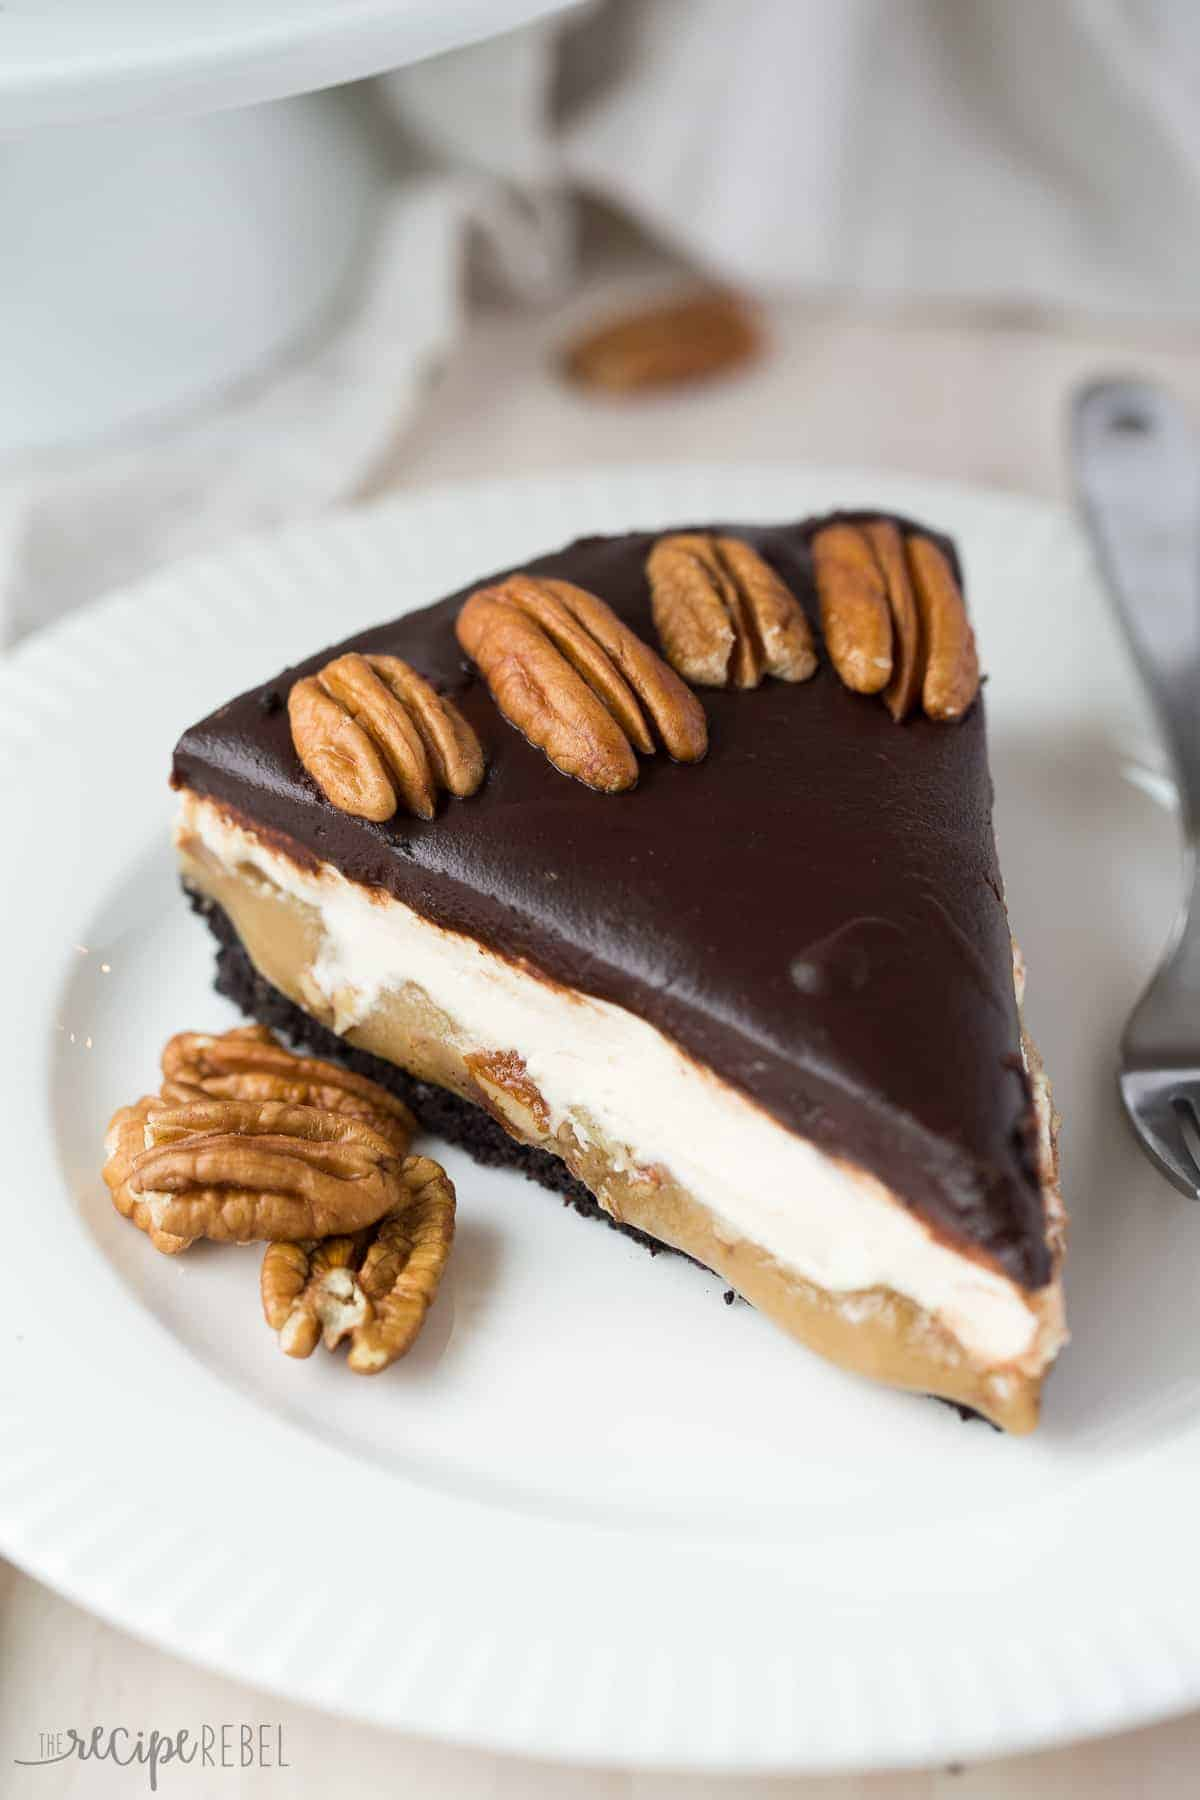 An Oreo cookie crust, a layer of pecans and caramel, a cheesecake layer and chocolate ganache make up this Almost No Bake Turtle Cheesecake! The crust bakes 10 minutes, and the rest sets up in the fridge.